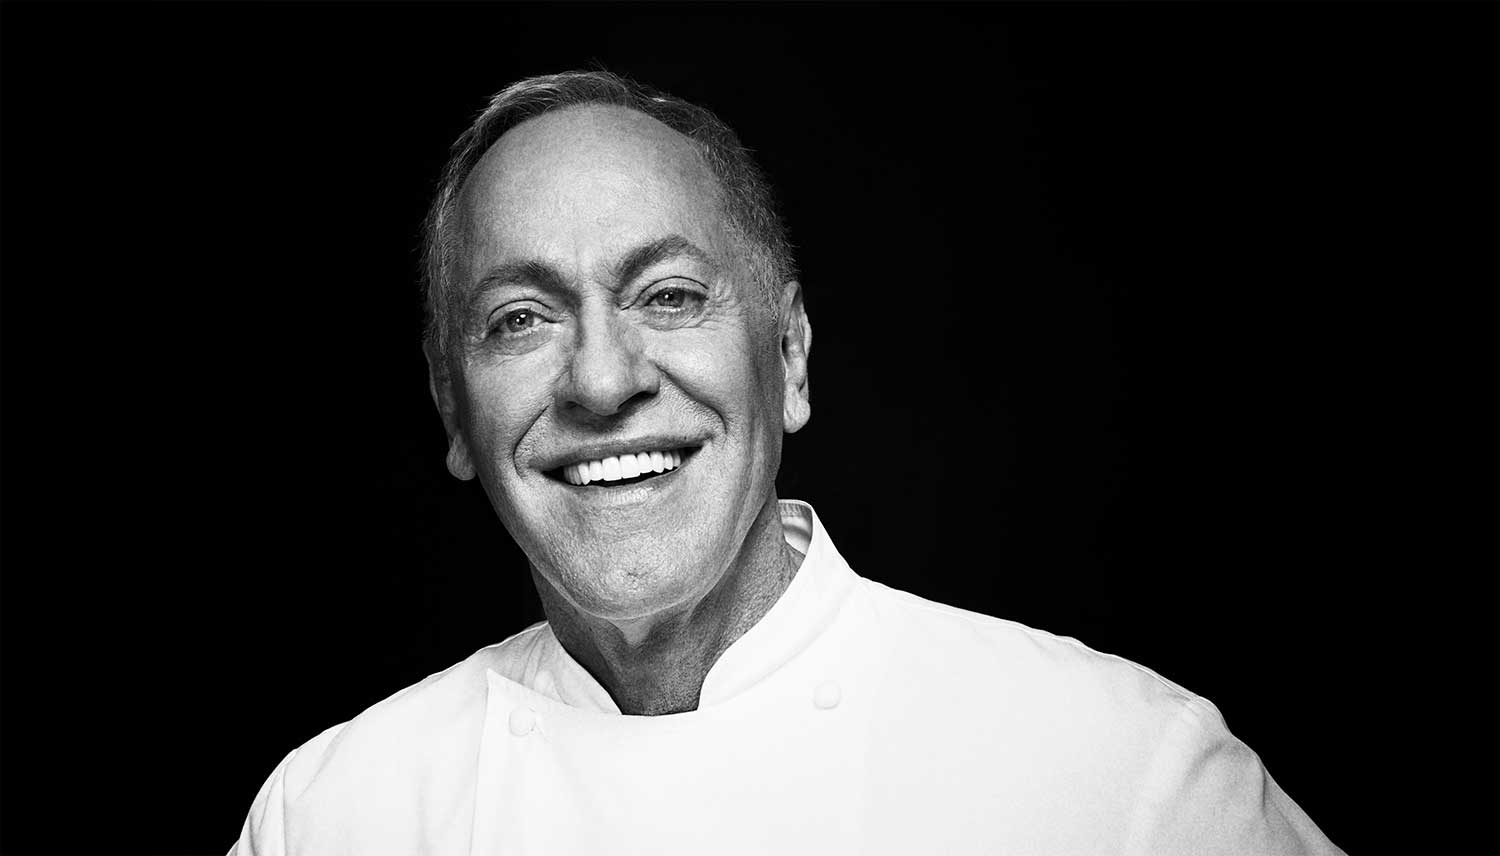 A black and white headshot of Chef Patrick O'Connell, smiling.